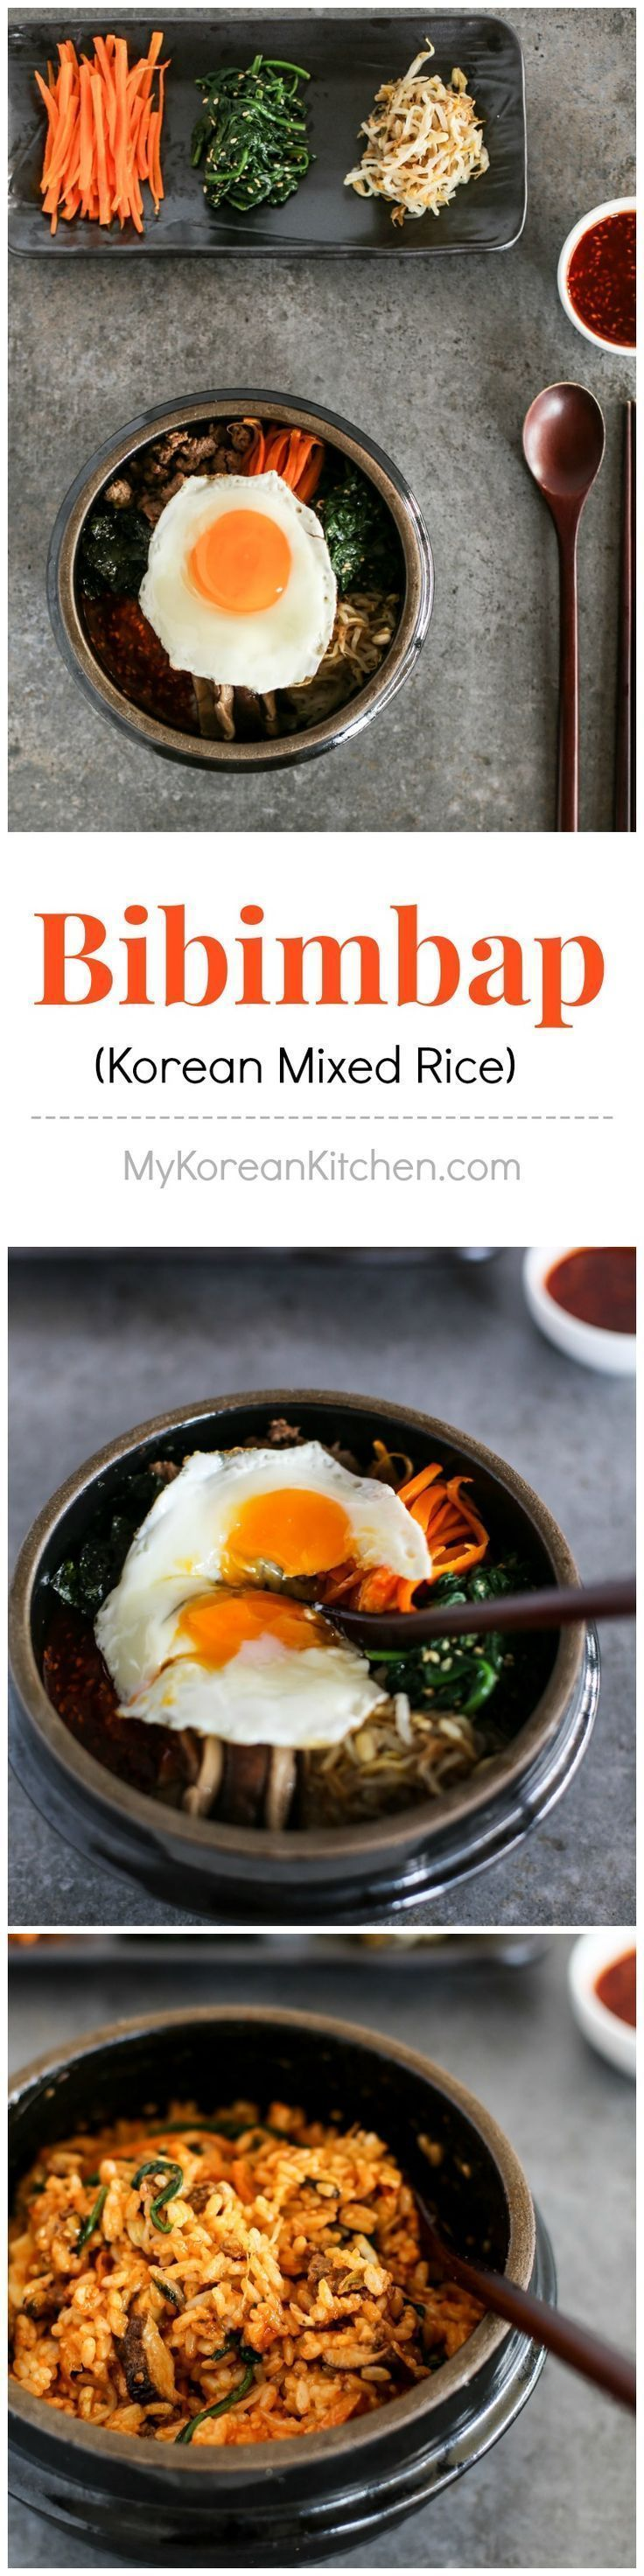 Addictively delicious Bibimbap recipe | http://MyKoreanKitchen.com